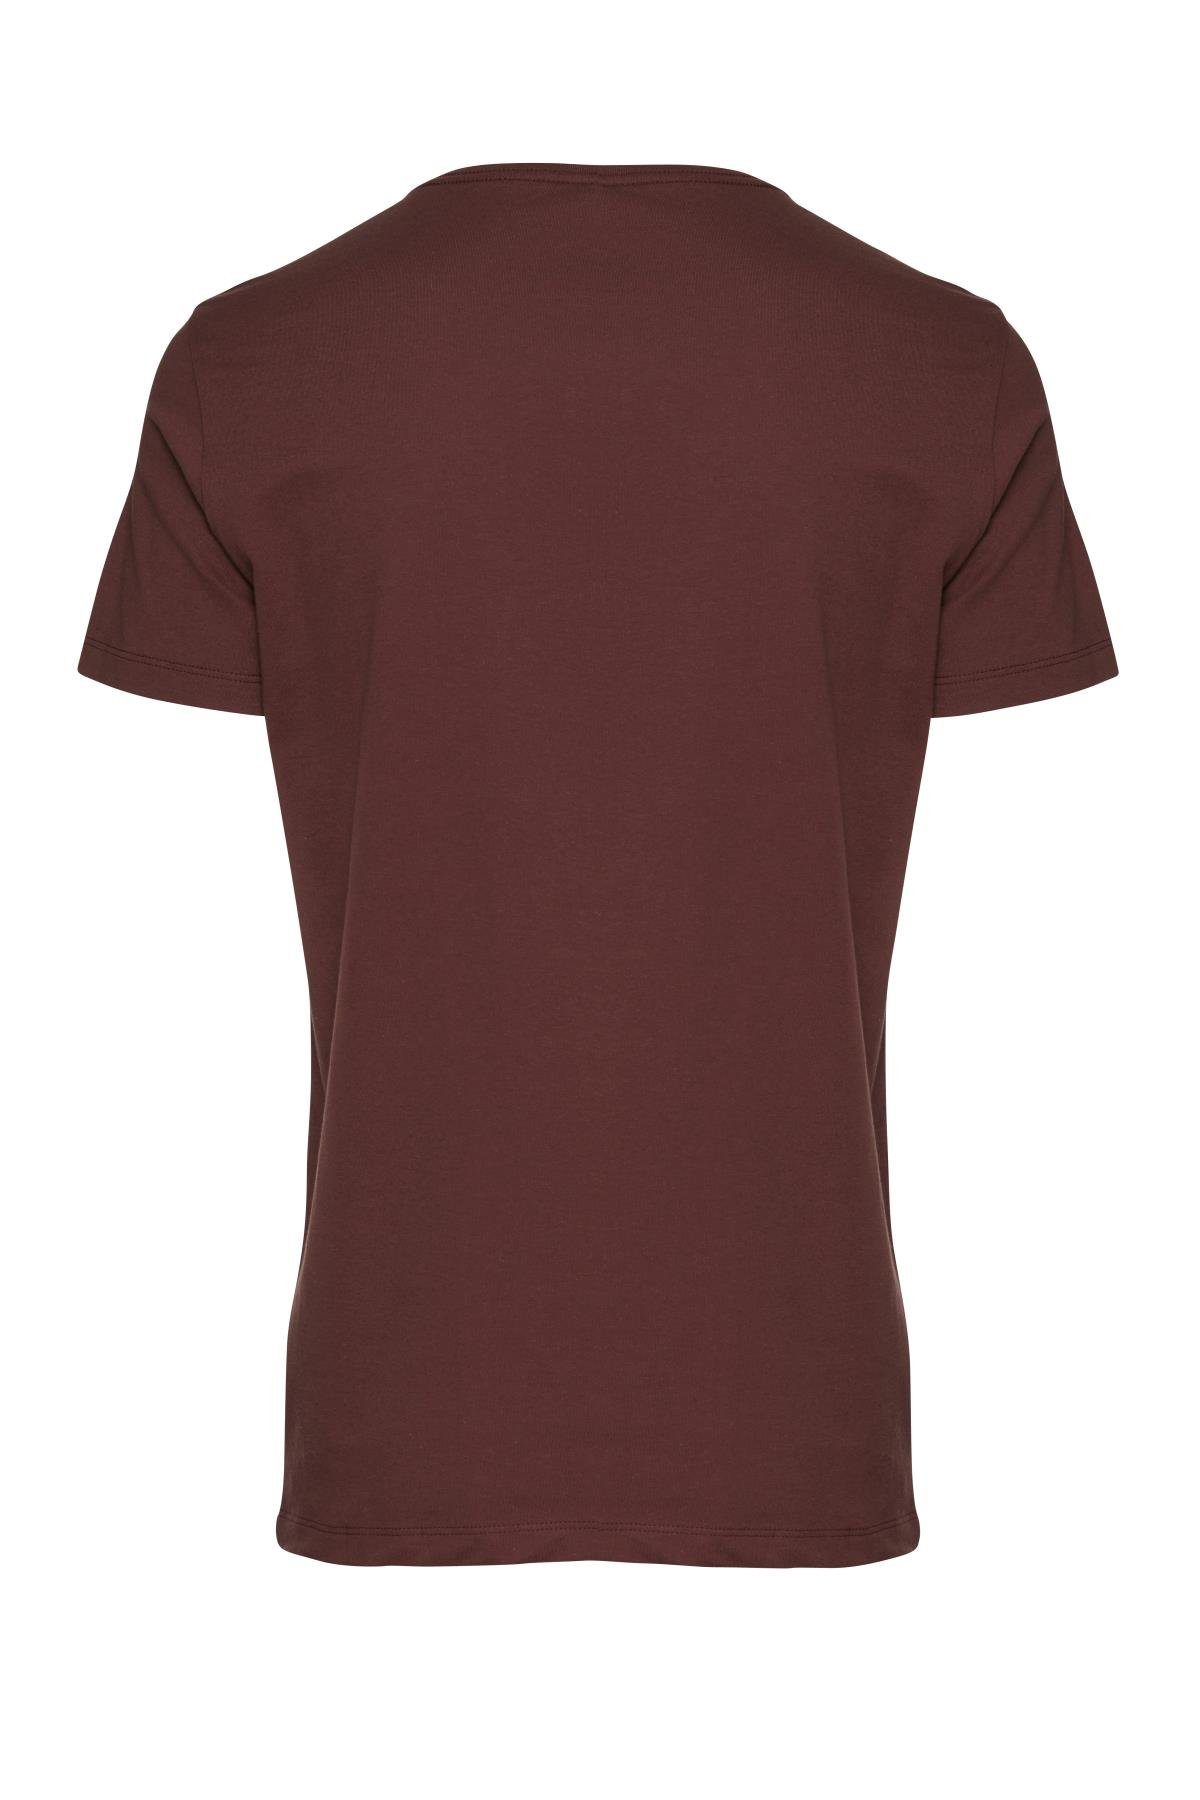 Deep Red T-shirt – Køb Deep Red T-shirt fra str. S-XL her